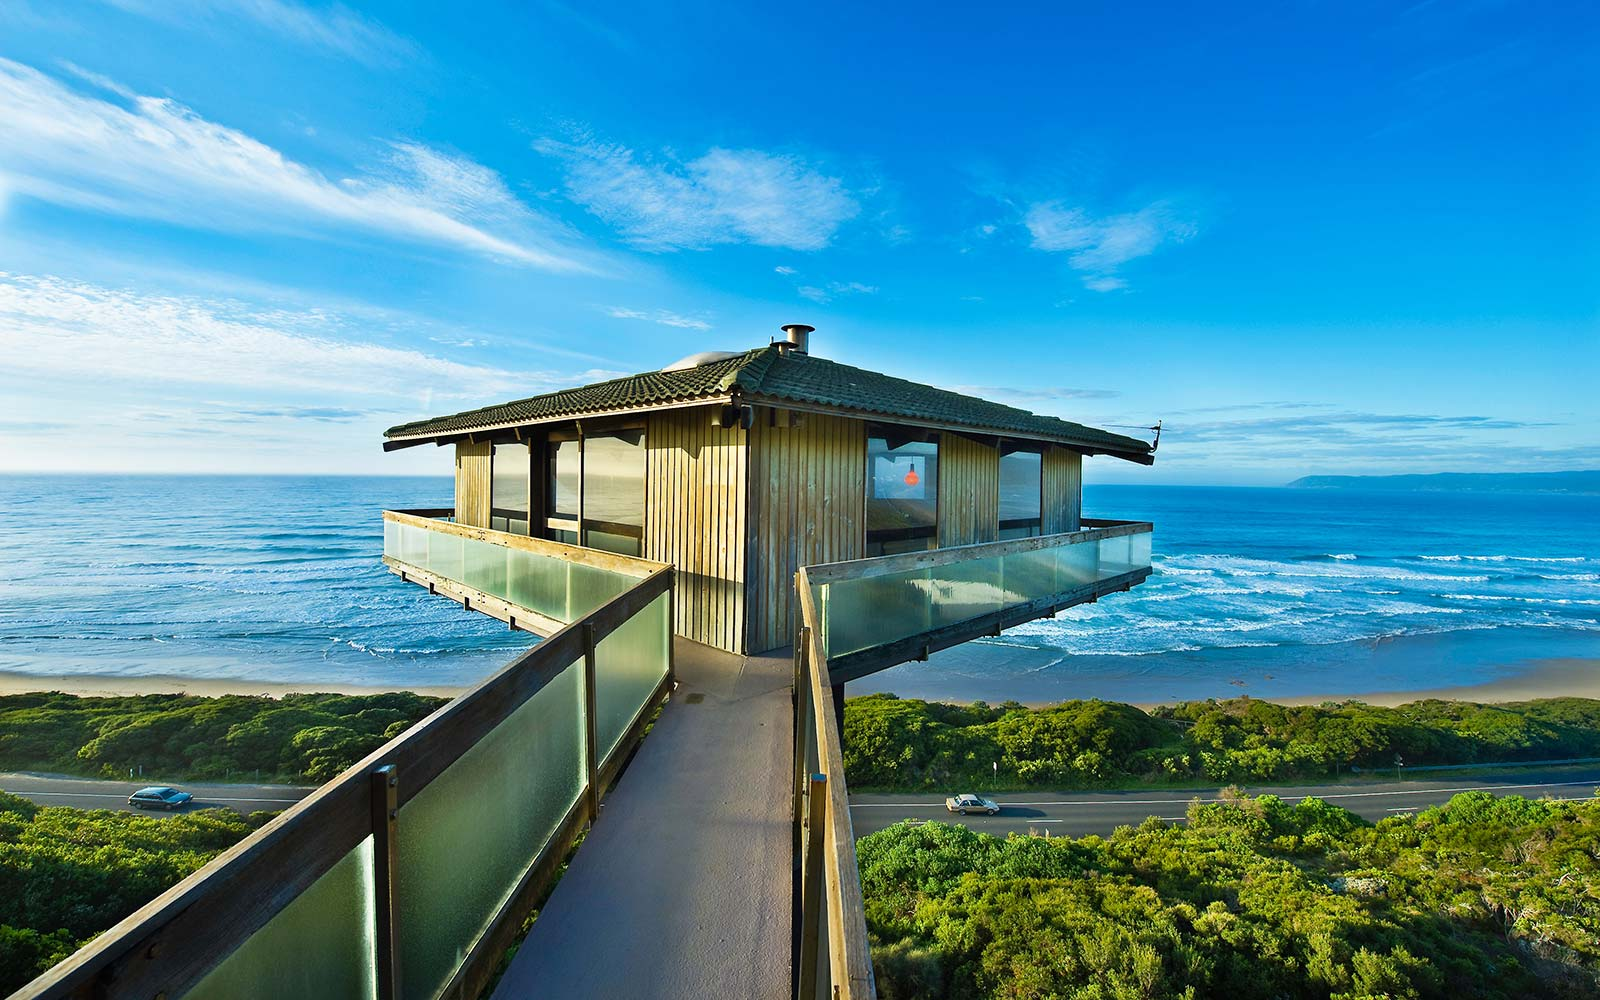 Australia, Victoria, Great Ocean Road, Great Otway National Park, Fairhaven, The Pole House, rental holiday house